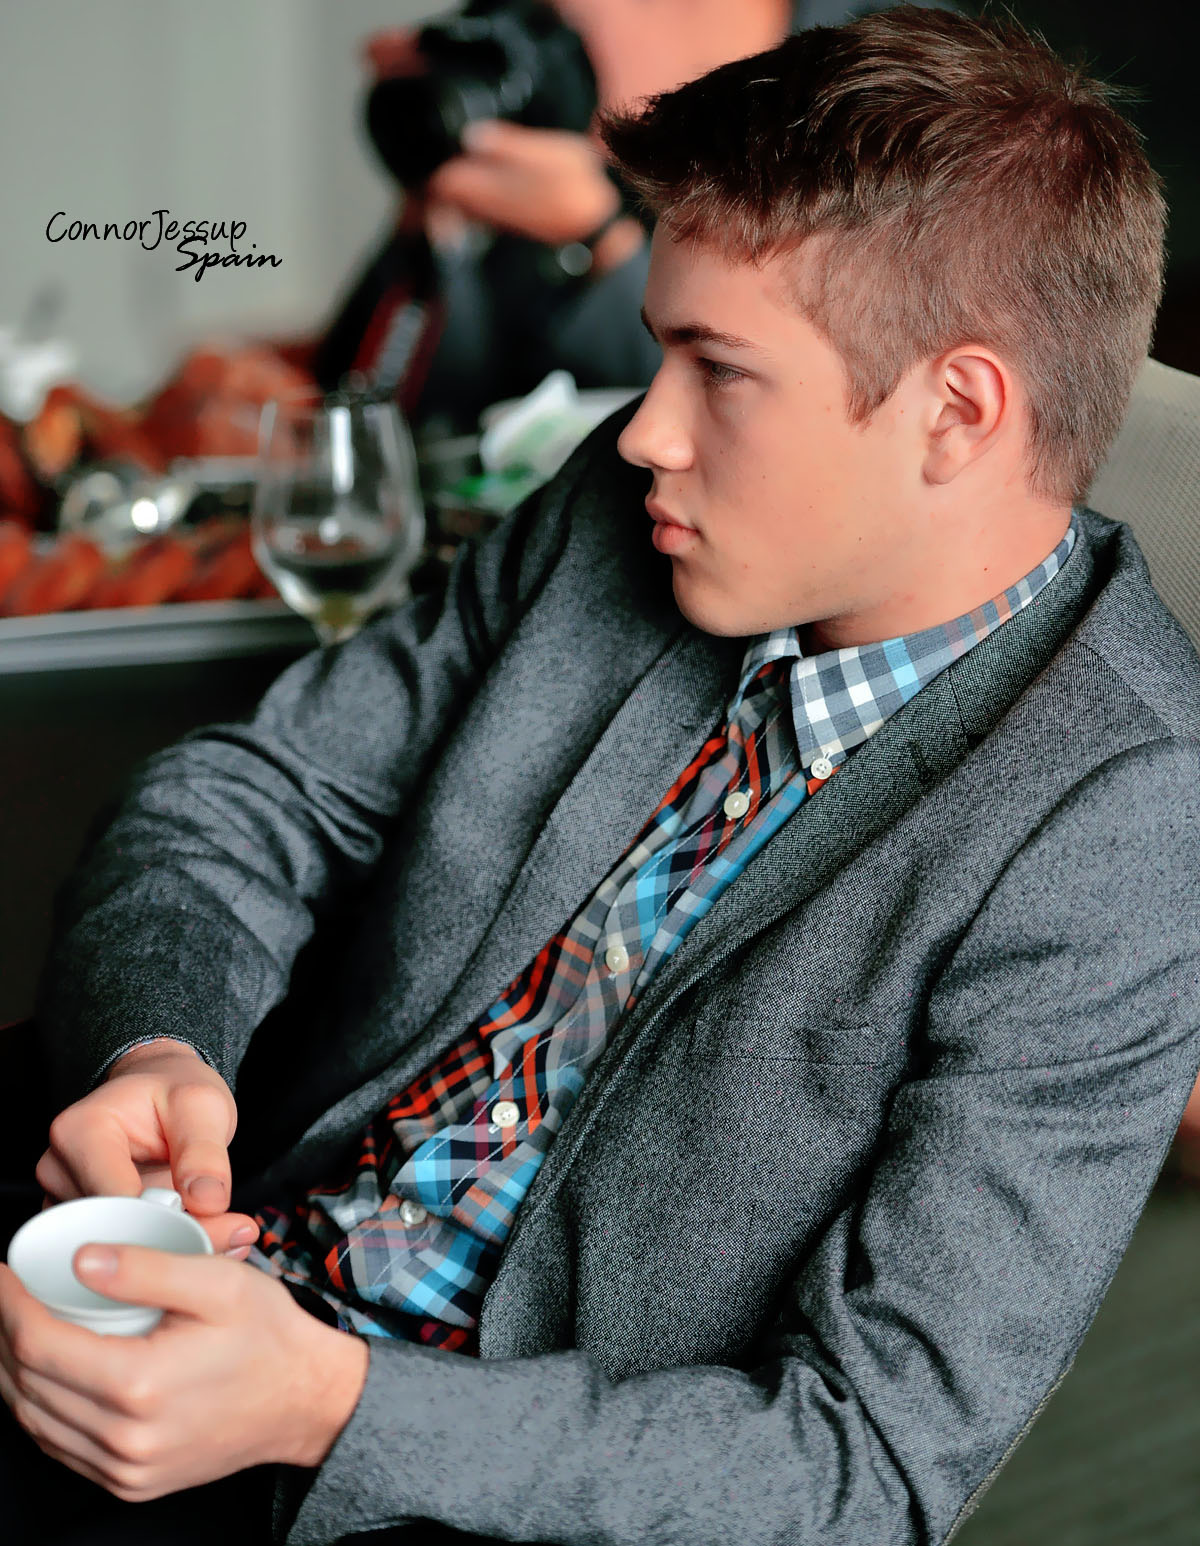 connor jessup filmography